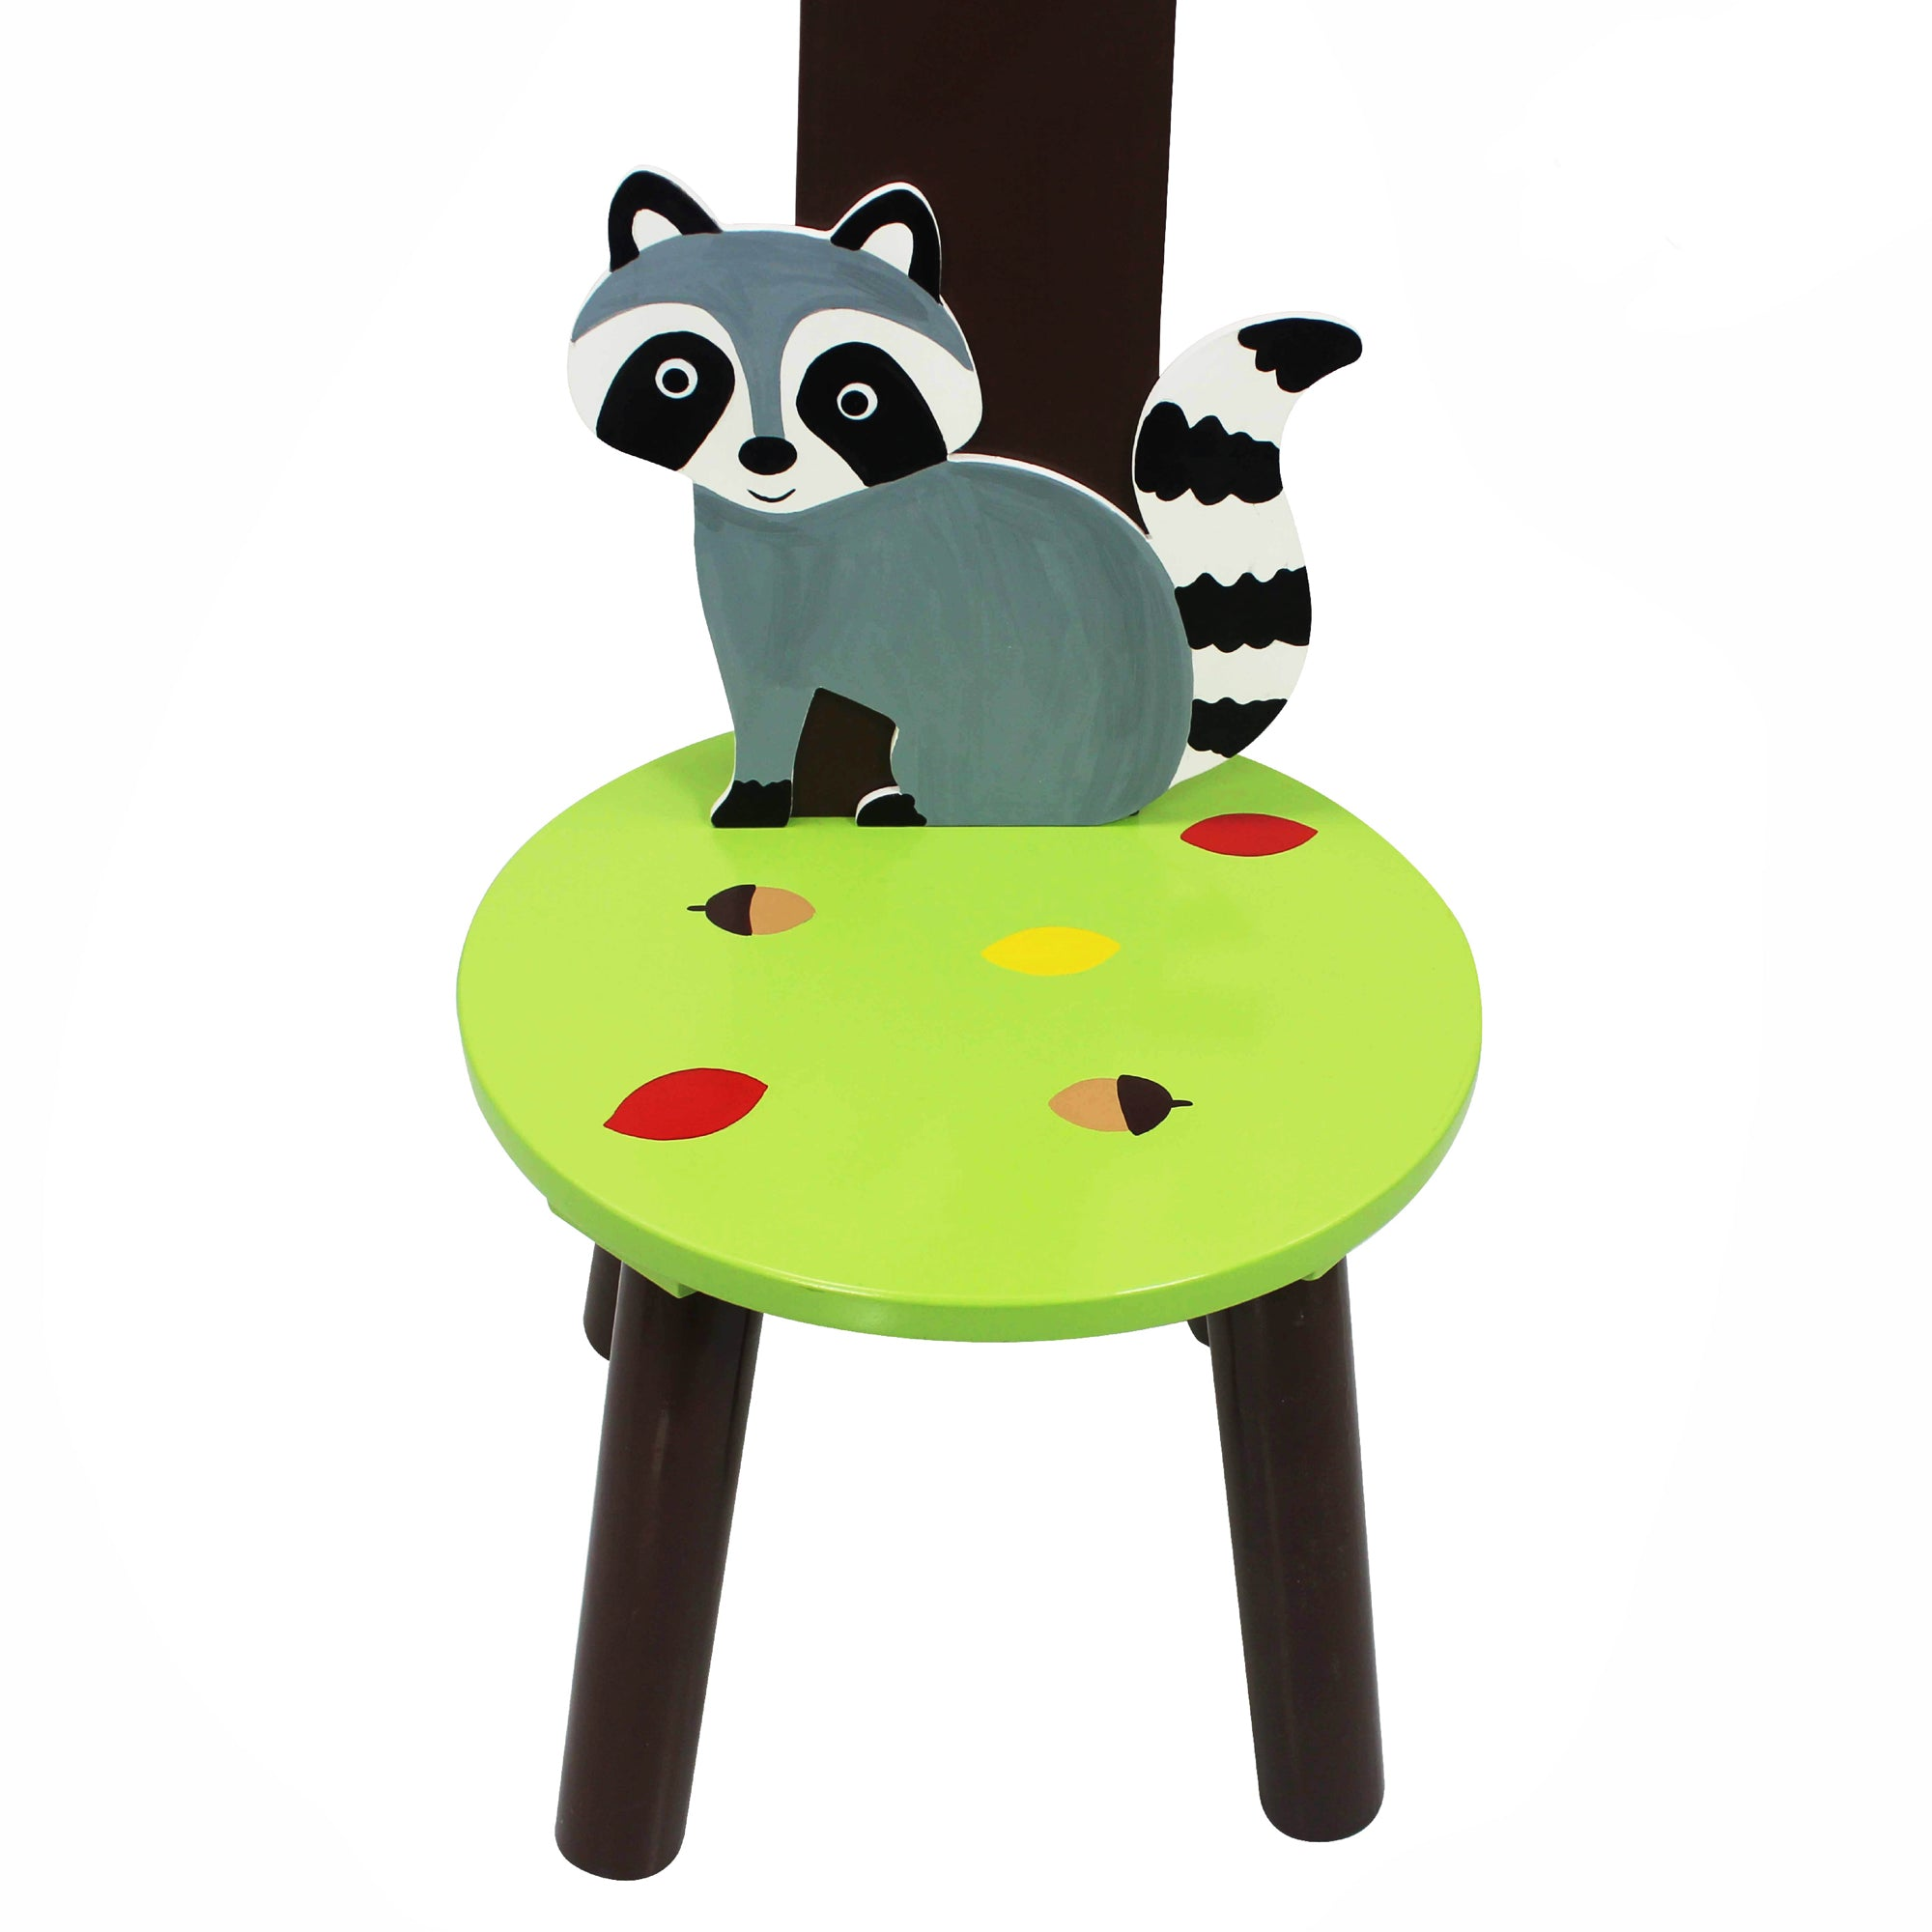 Play Time Tagged Quot Kids Designer Furniture Quot Childhood